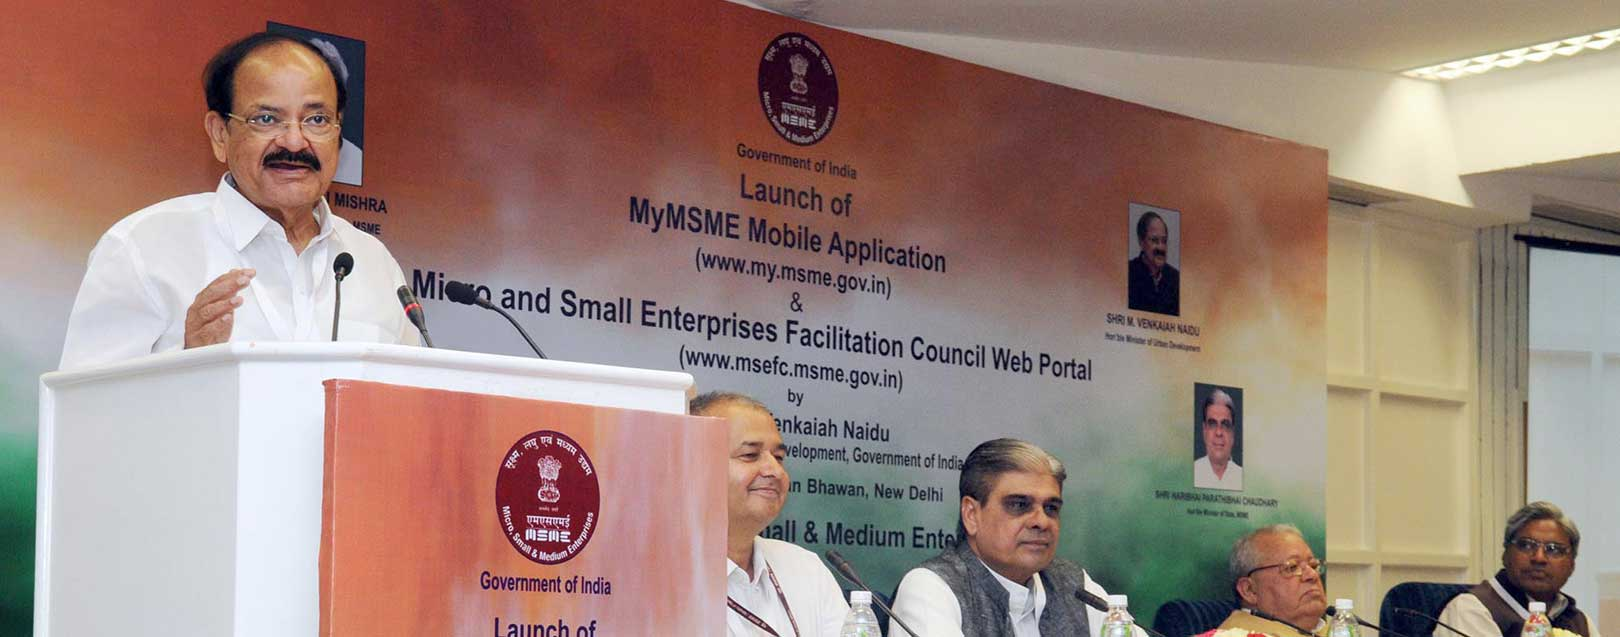 Naidu launches MSEFC portal and MyMSME app, for MSME sector